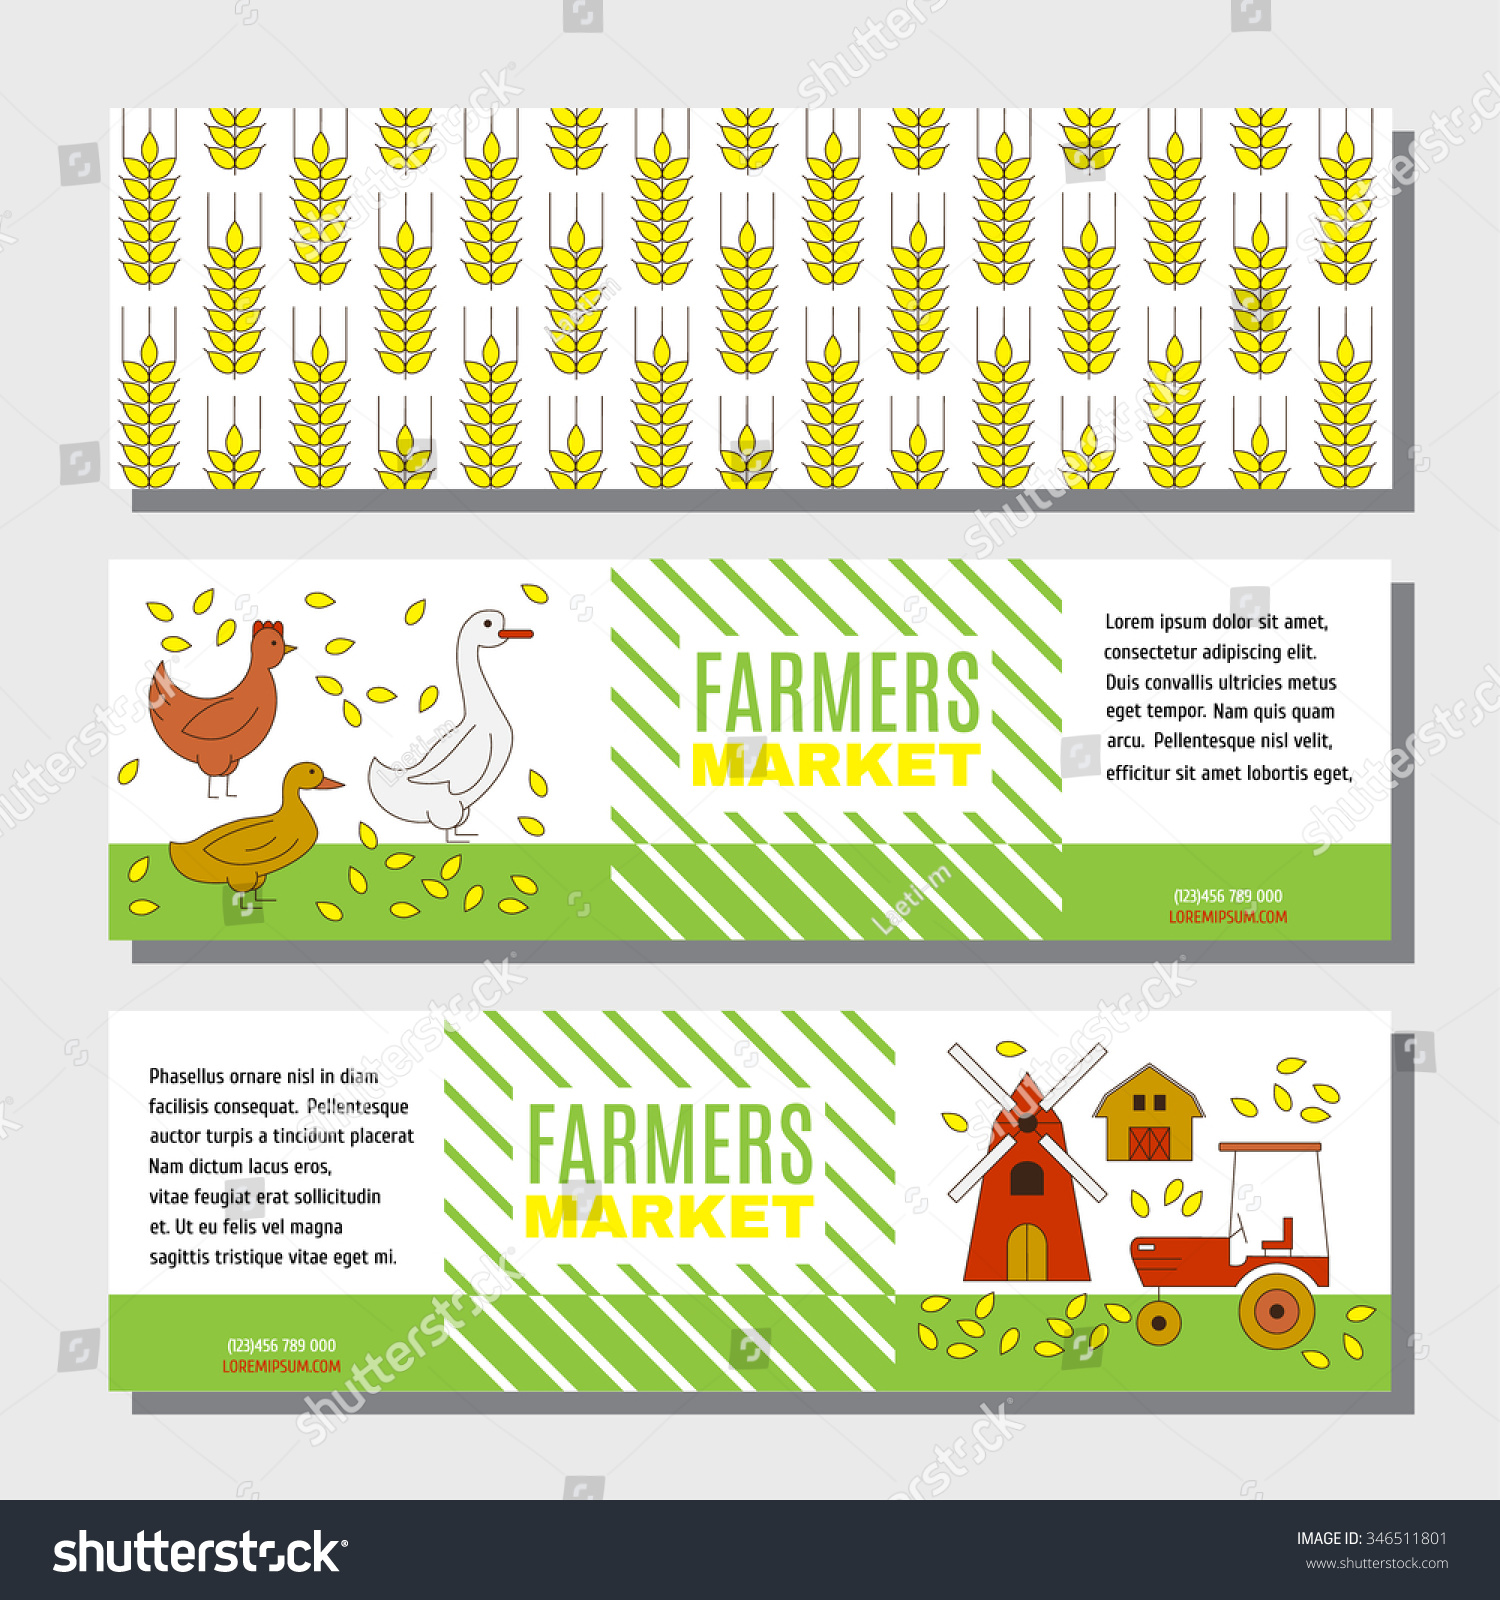 flyer banner information on farm products stock vector  flyer or banner for information on farm products cute background farm poultry tractor